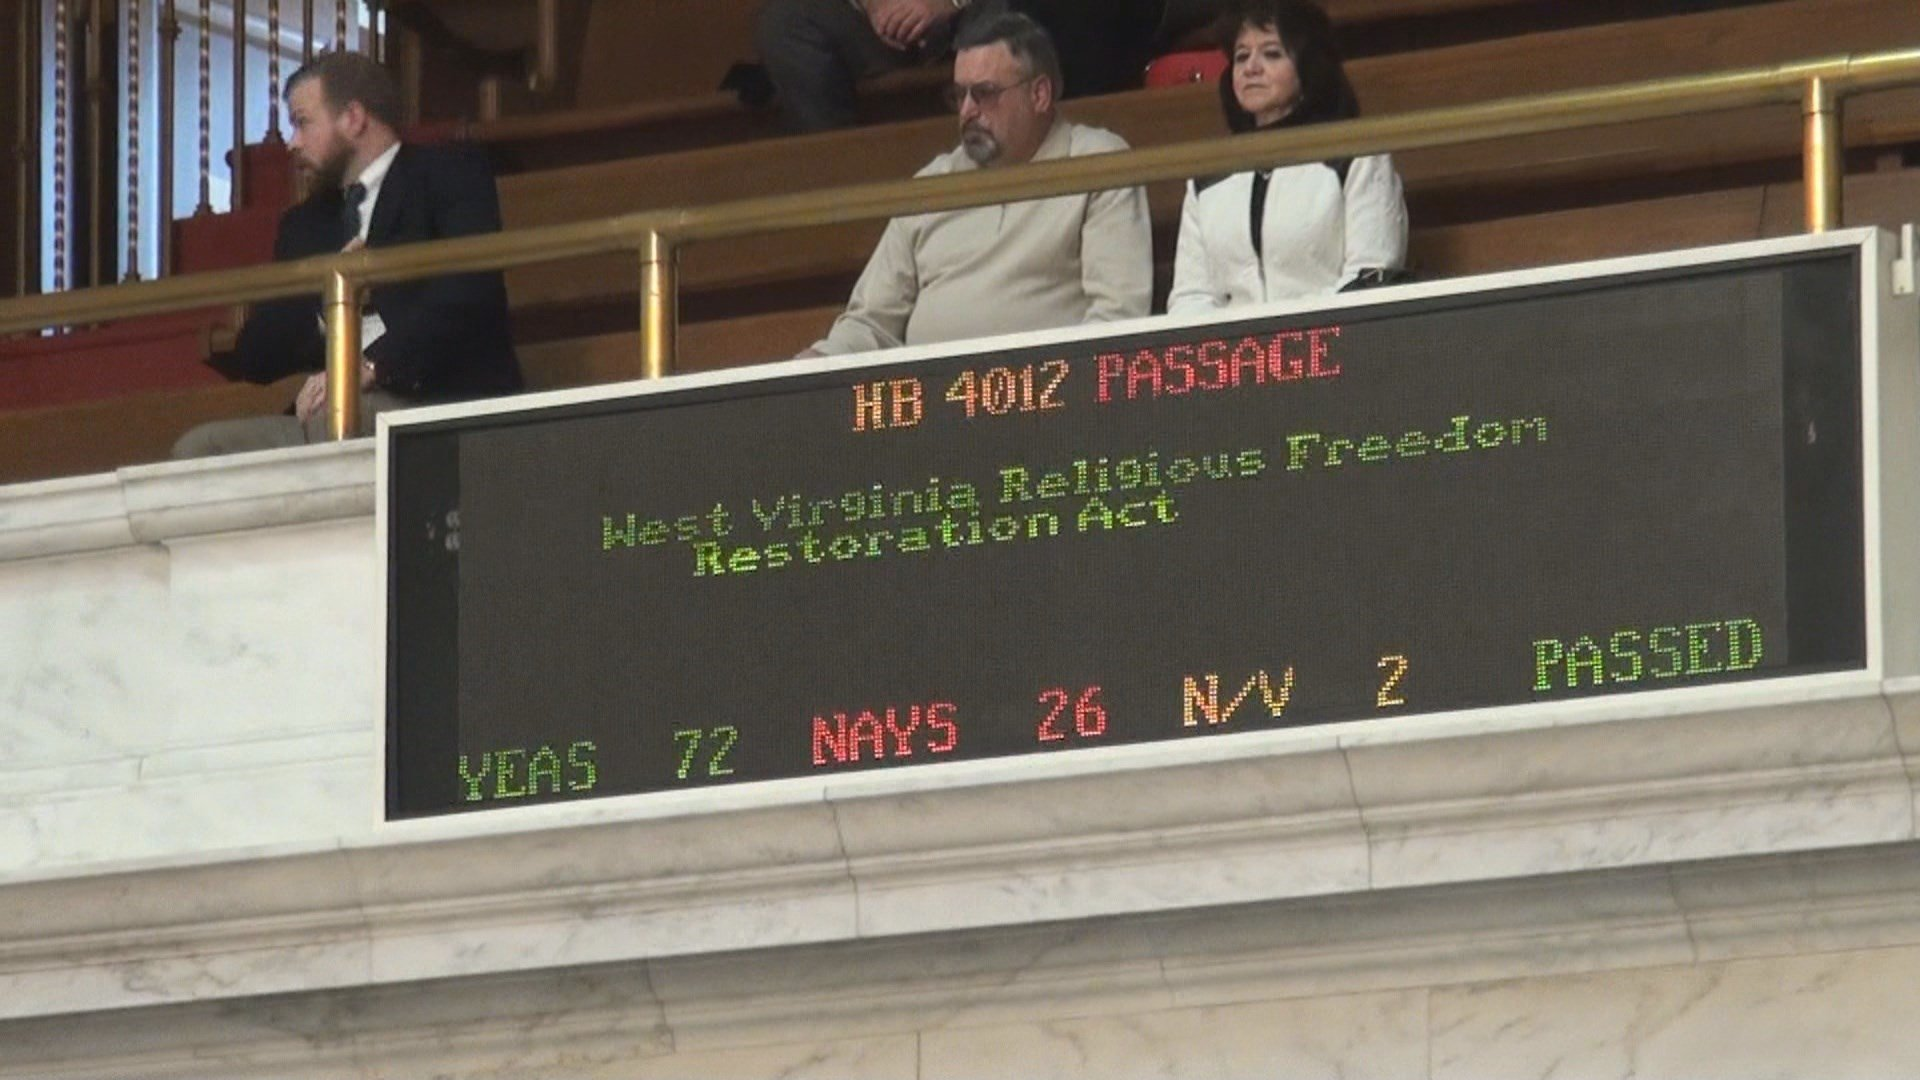 The House of Delegates cleared the Religious Freedom Restoration Act by a 72-26 vote, Thursday.